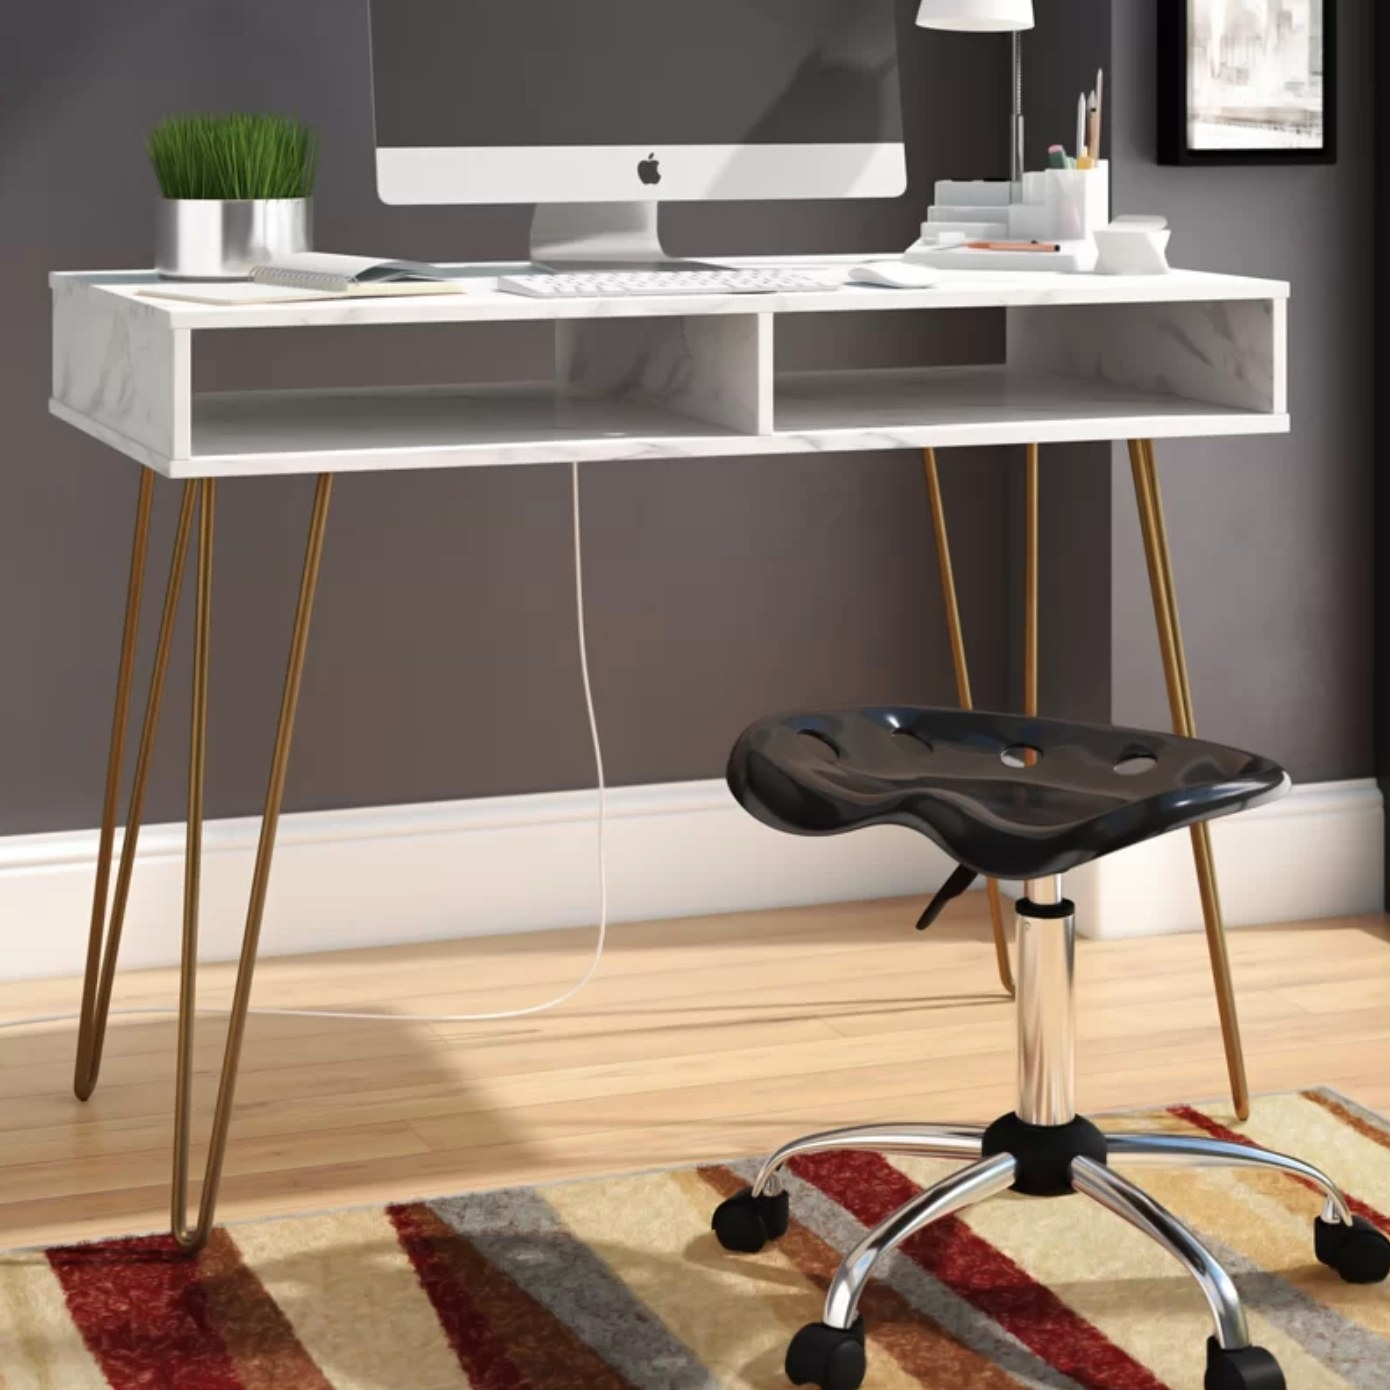 The writing desk in white marble